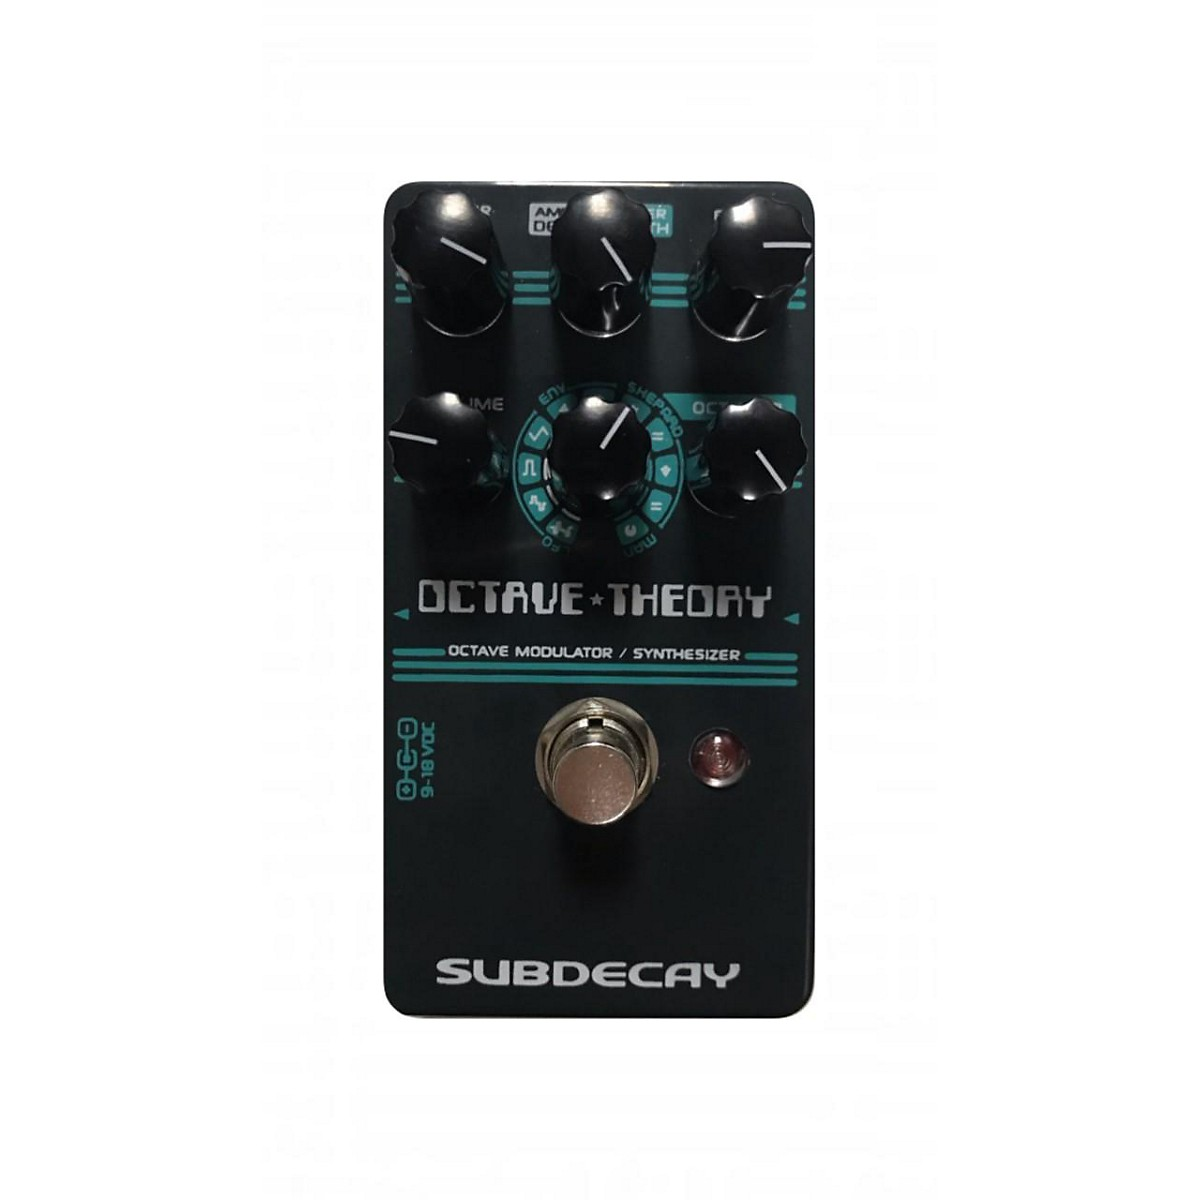 Subdecay Octave Theory Effect Pedal